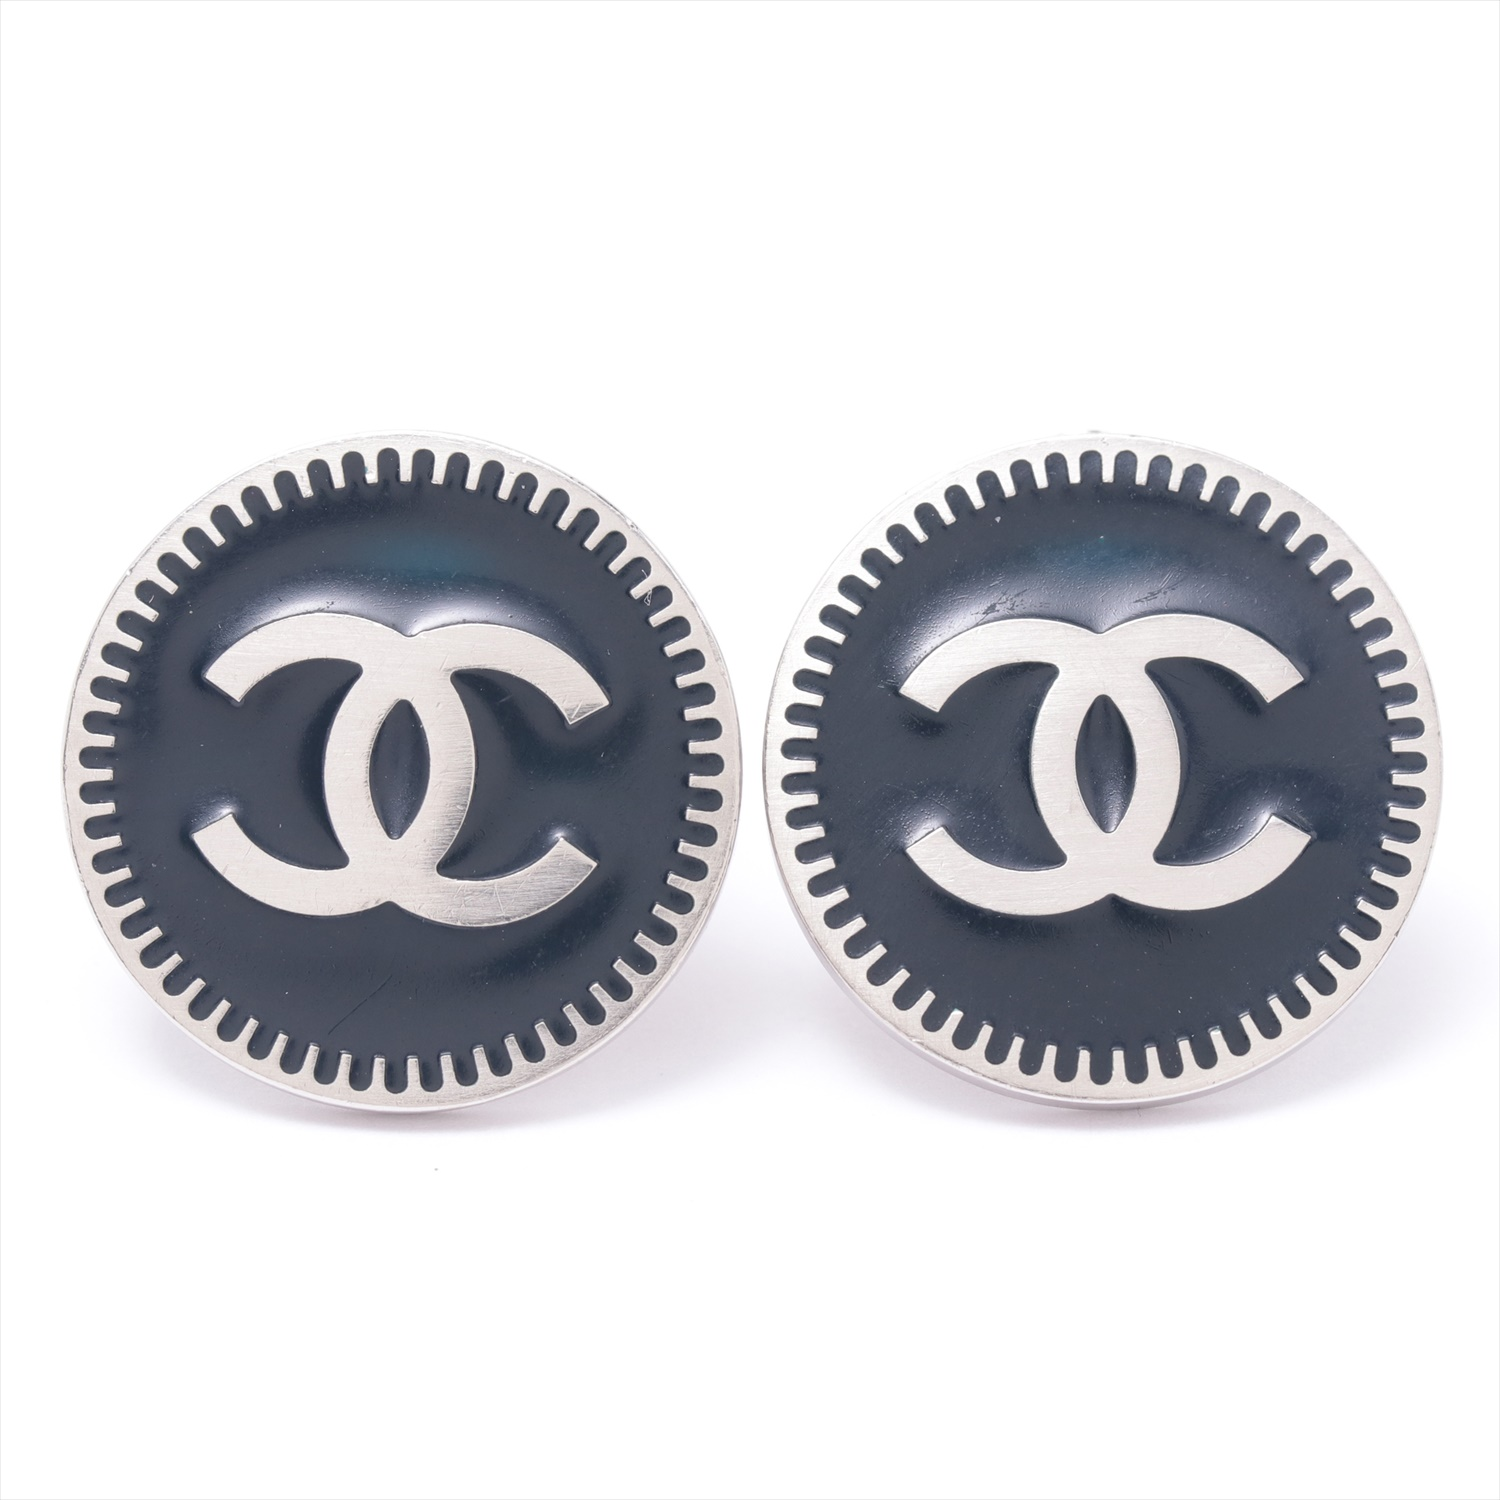 [Used goods] Chanel Coco mark earrings (for both ears) metal material black 06P